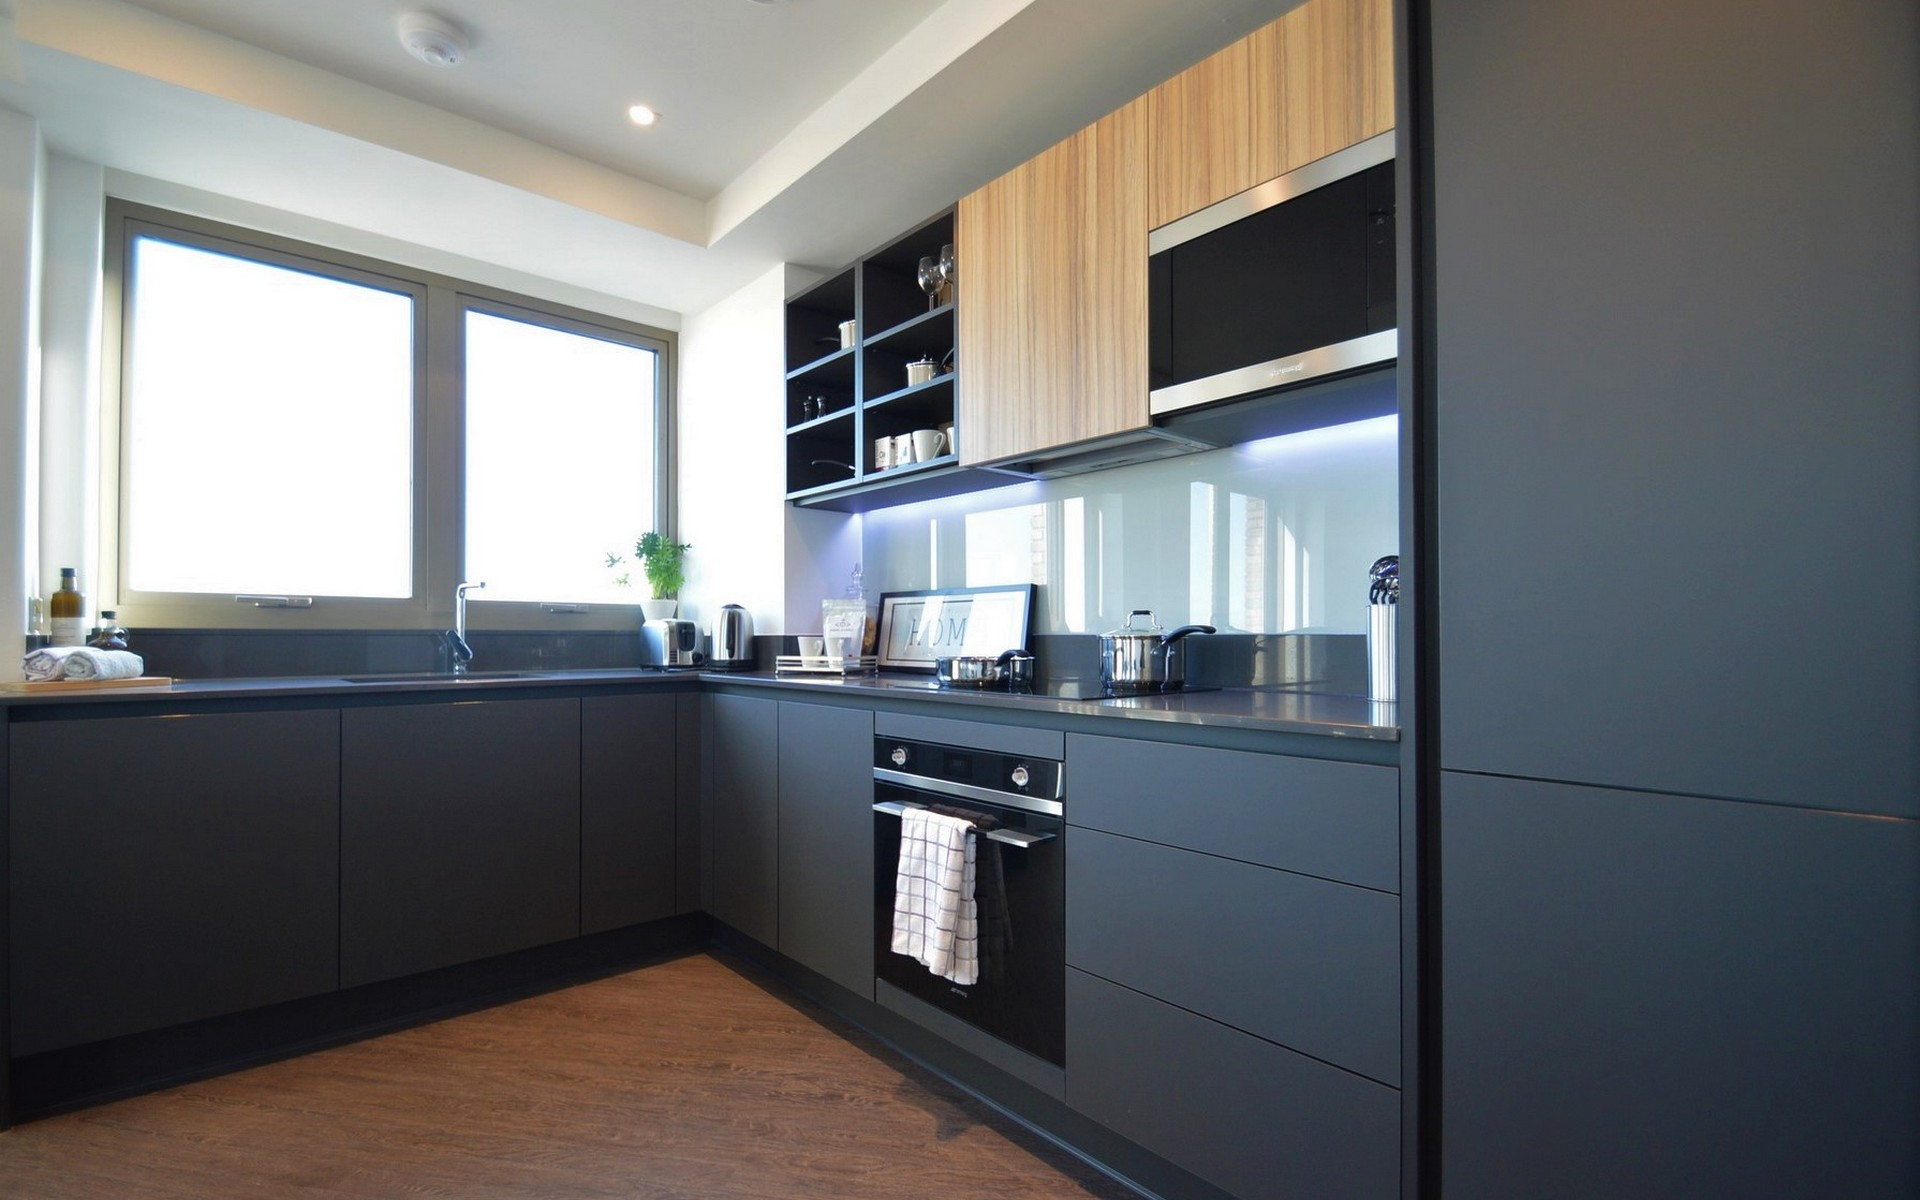 Example of a Kitchen at Mount Anvil's Royal Docks West